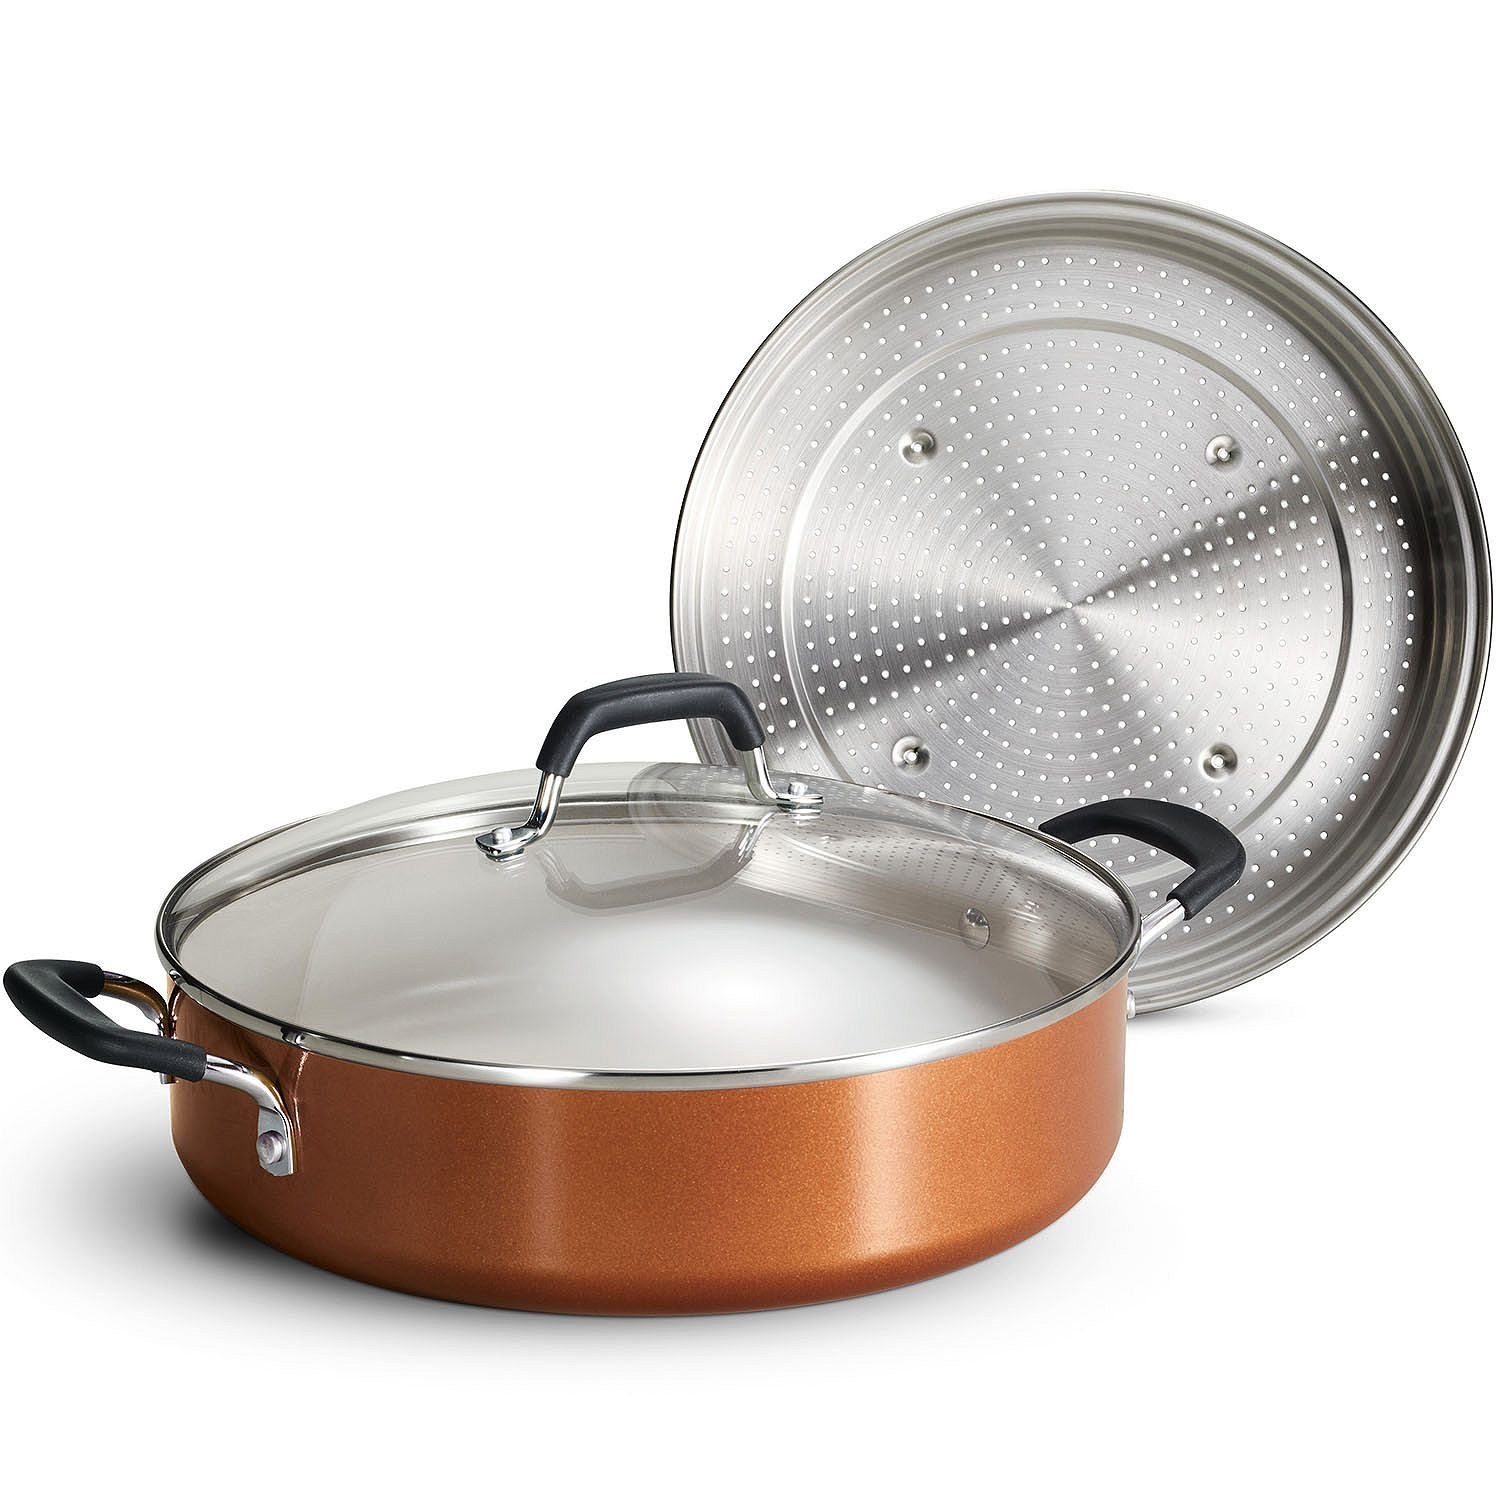 Tramontina Nonstick Everyday Pan, 5.5 qt. - Copper by Tramontina